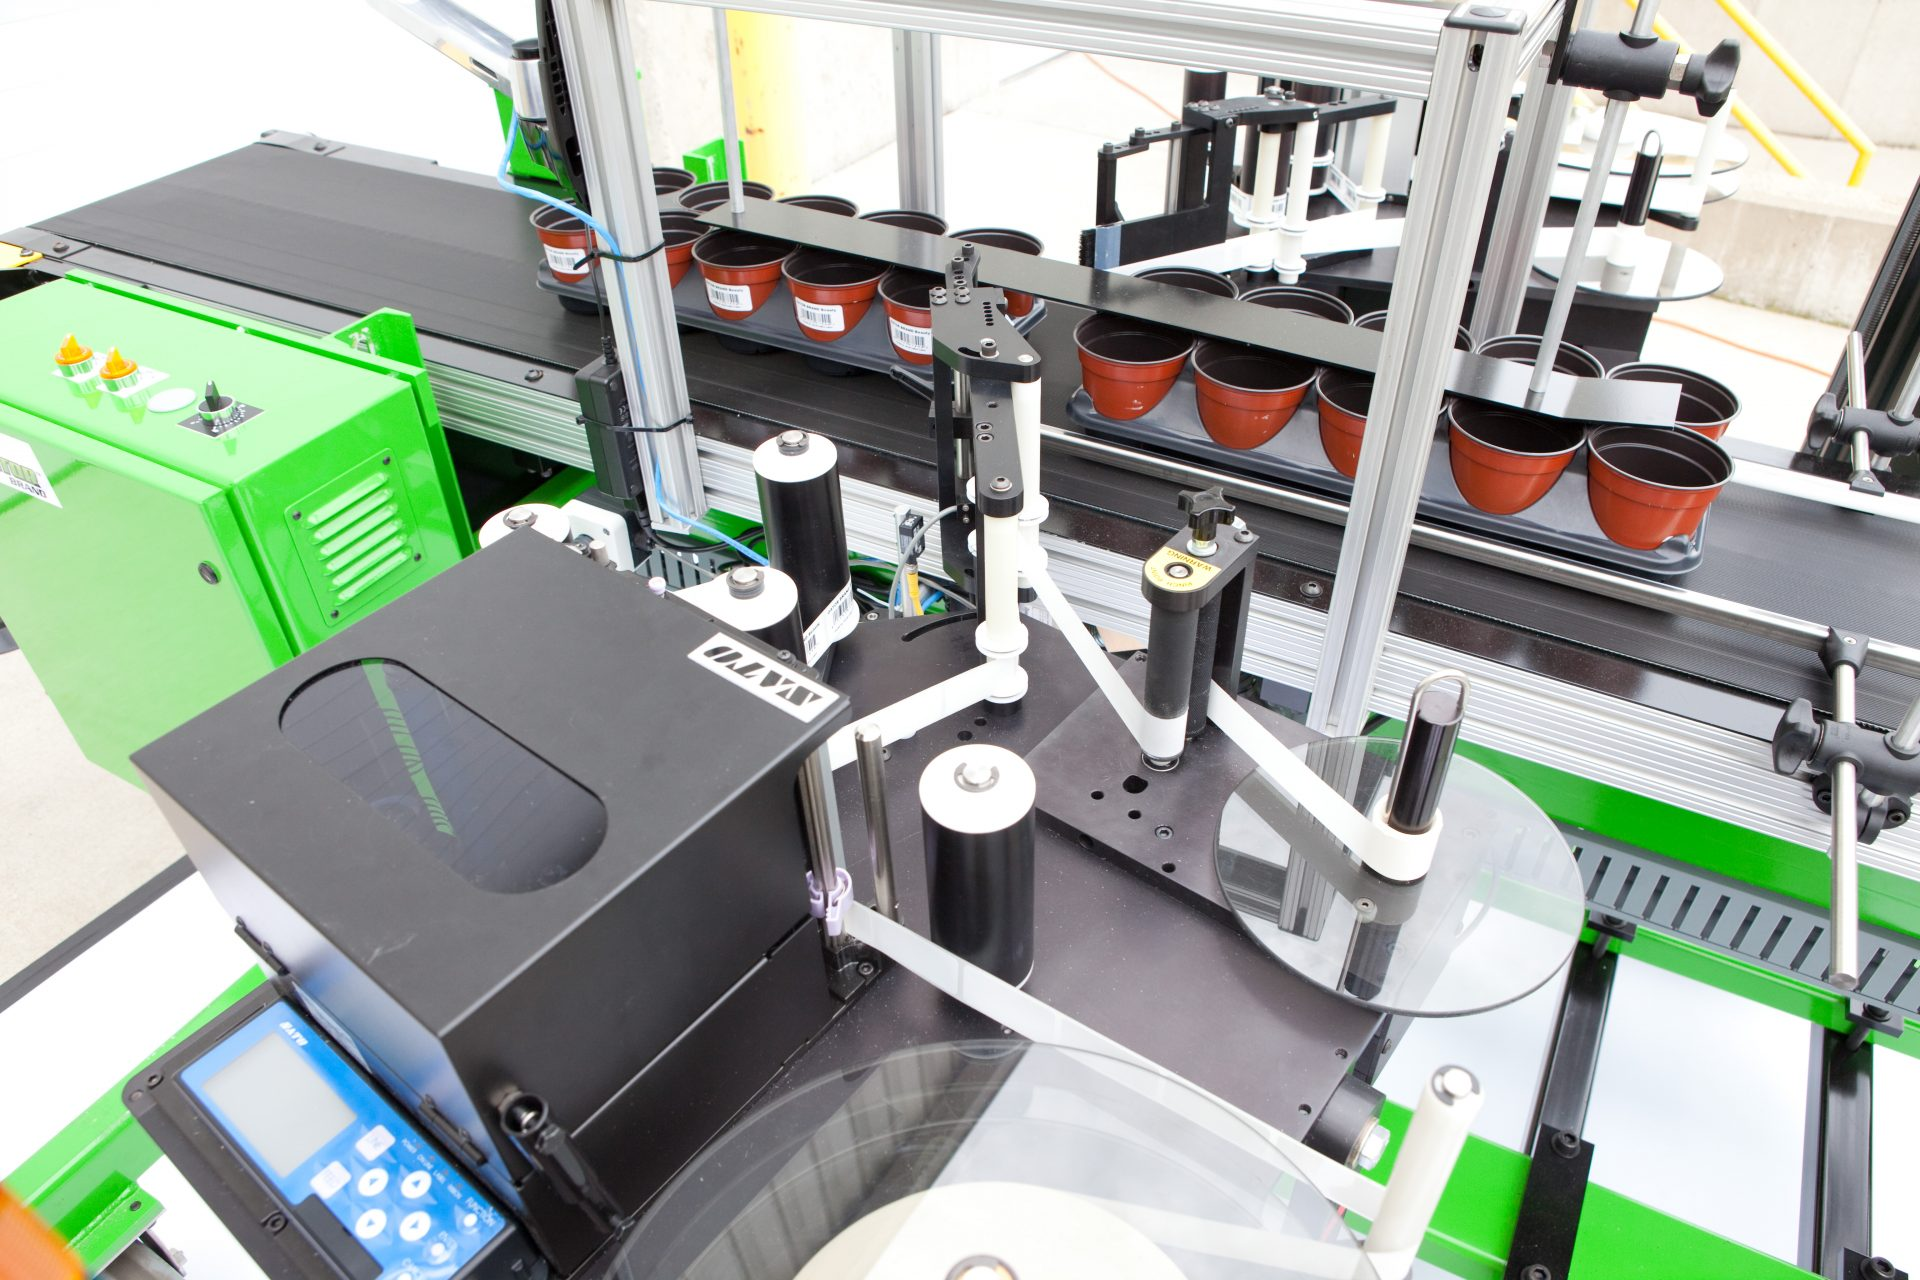 The Label Gator Two-Sided Labeling System